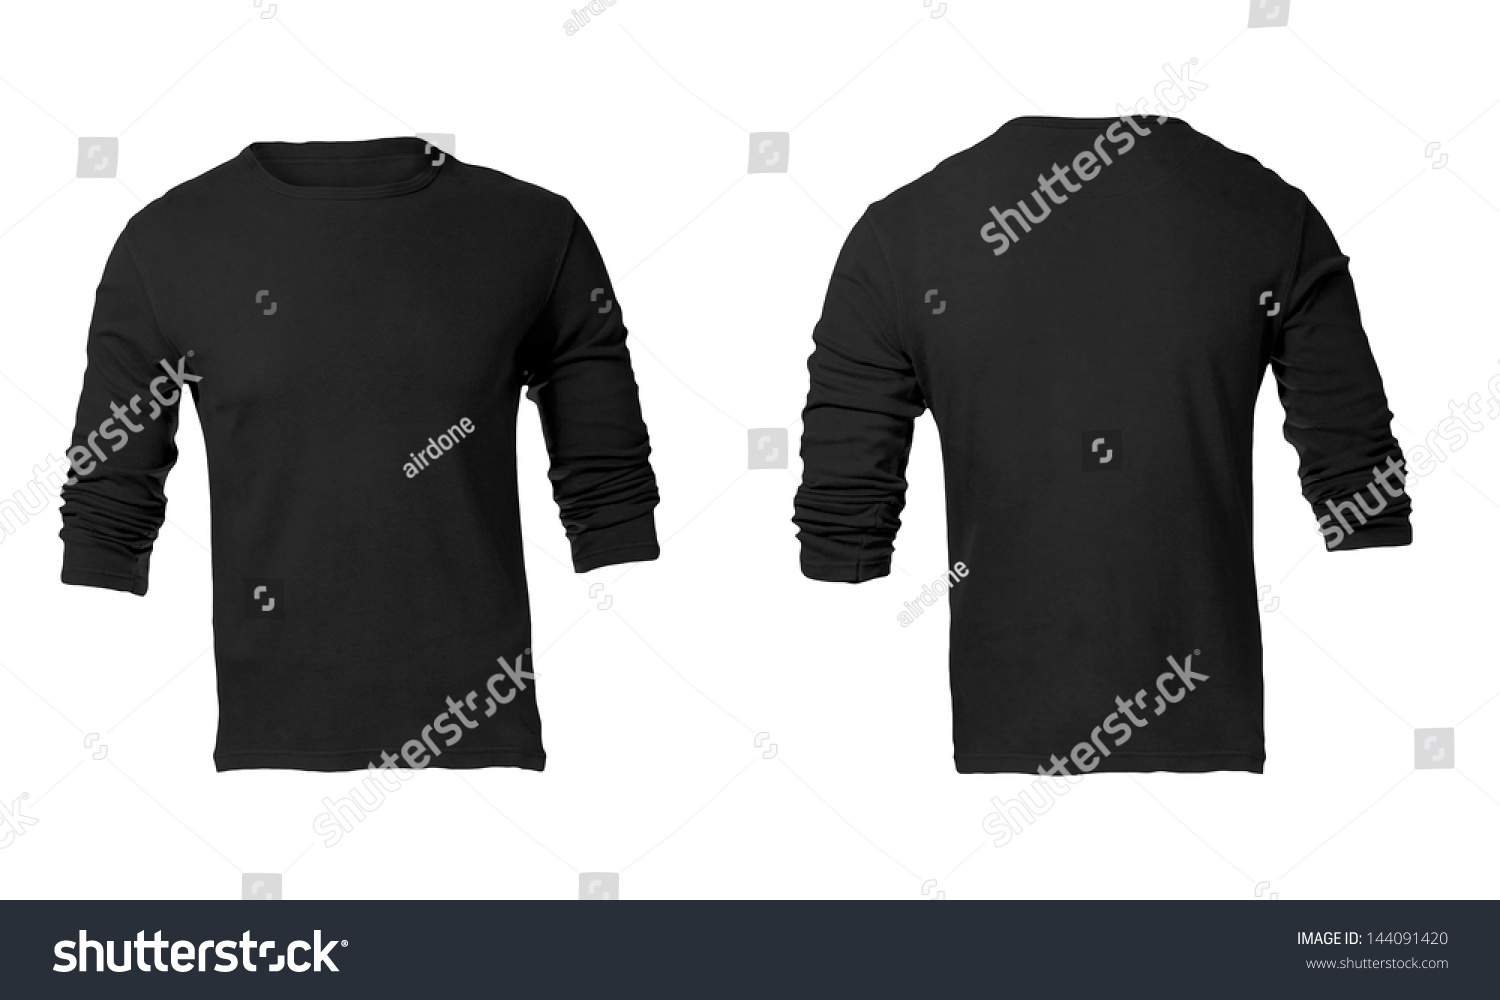 Images of Black Long Sleeve Shirt Men - Fashion Trends and Models